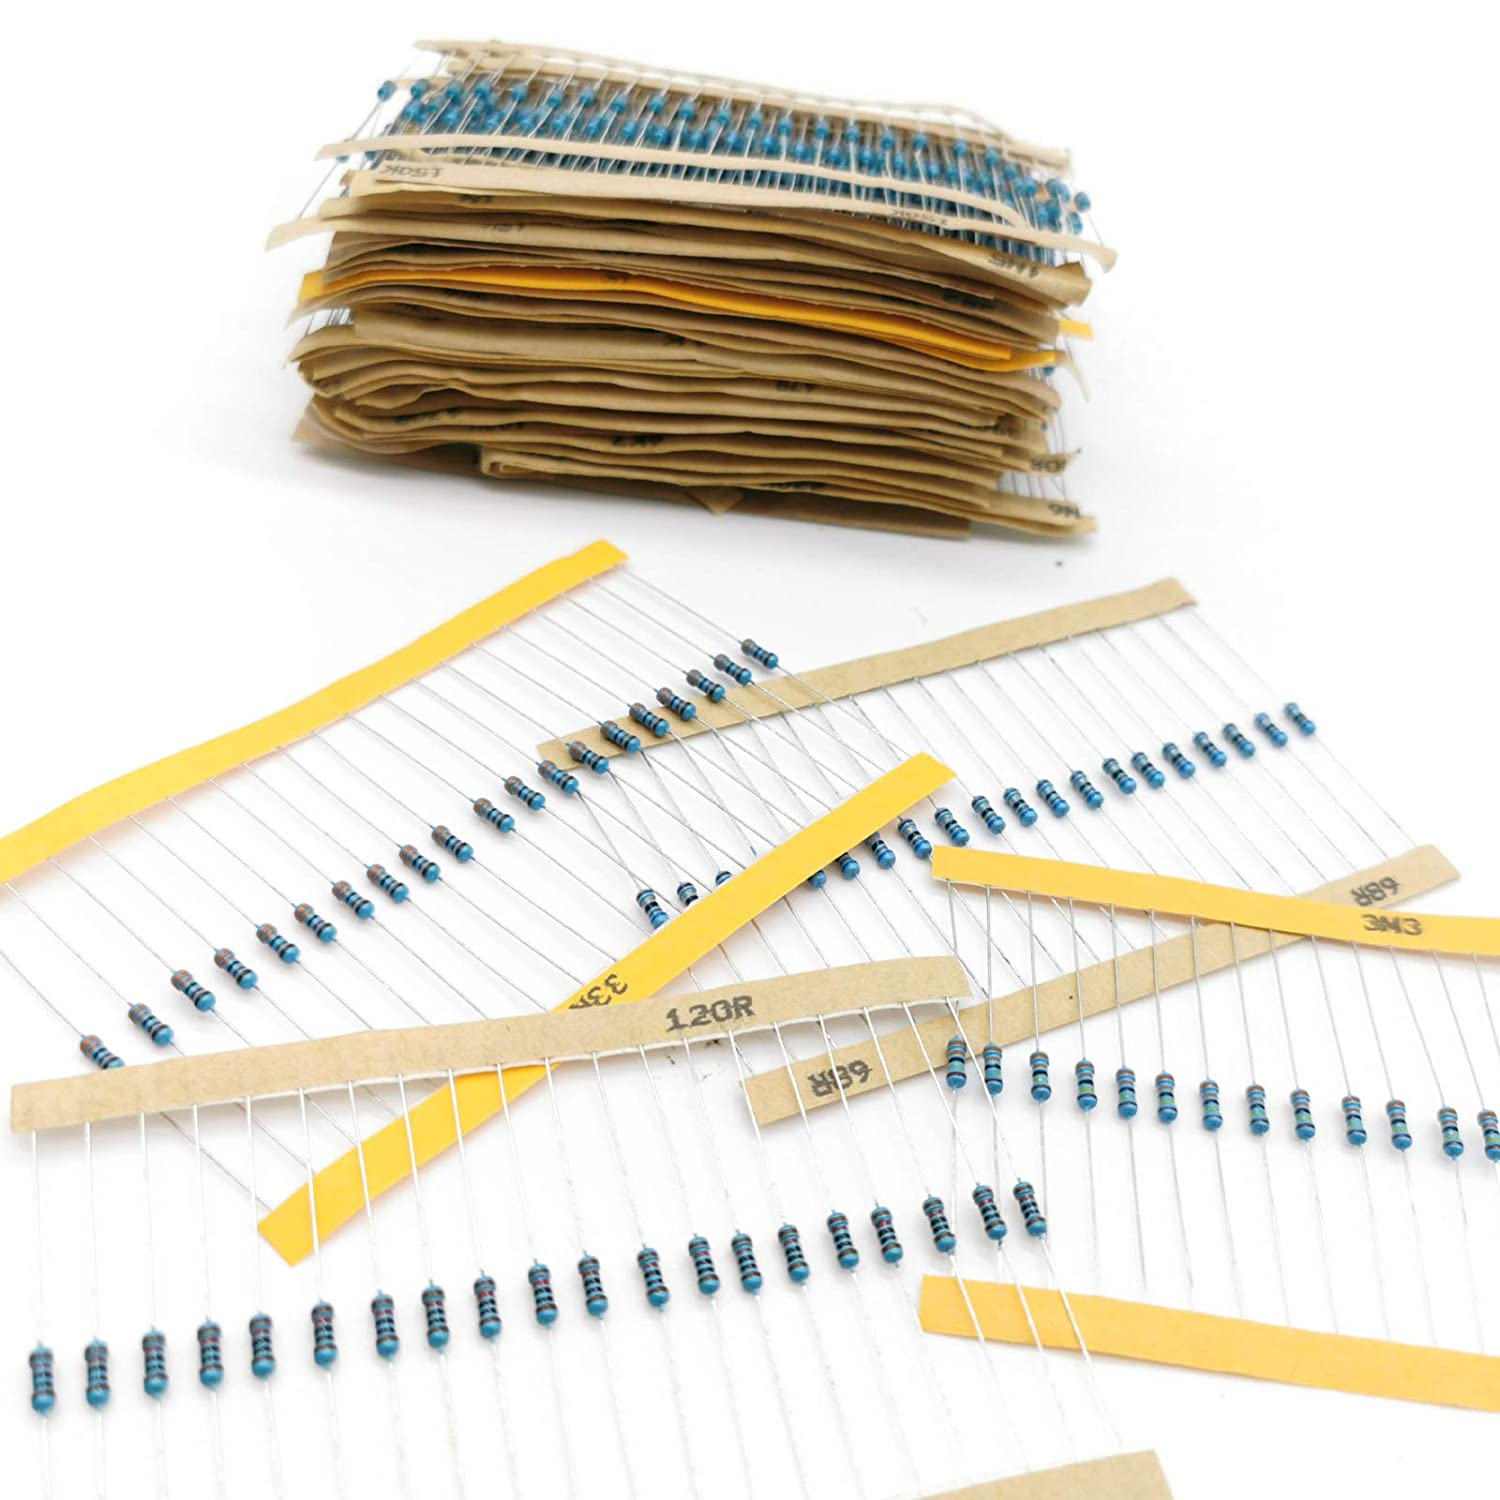 1/% Assorted Resistors 1 Ohm-10M Ohm 1//4W Metal Film Resistors Assortment with Pearl Plastic Bag for DIY Projects and Experiments 1280 Pieces 64 Values Resistor Kit